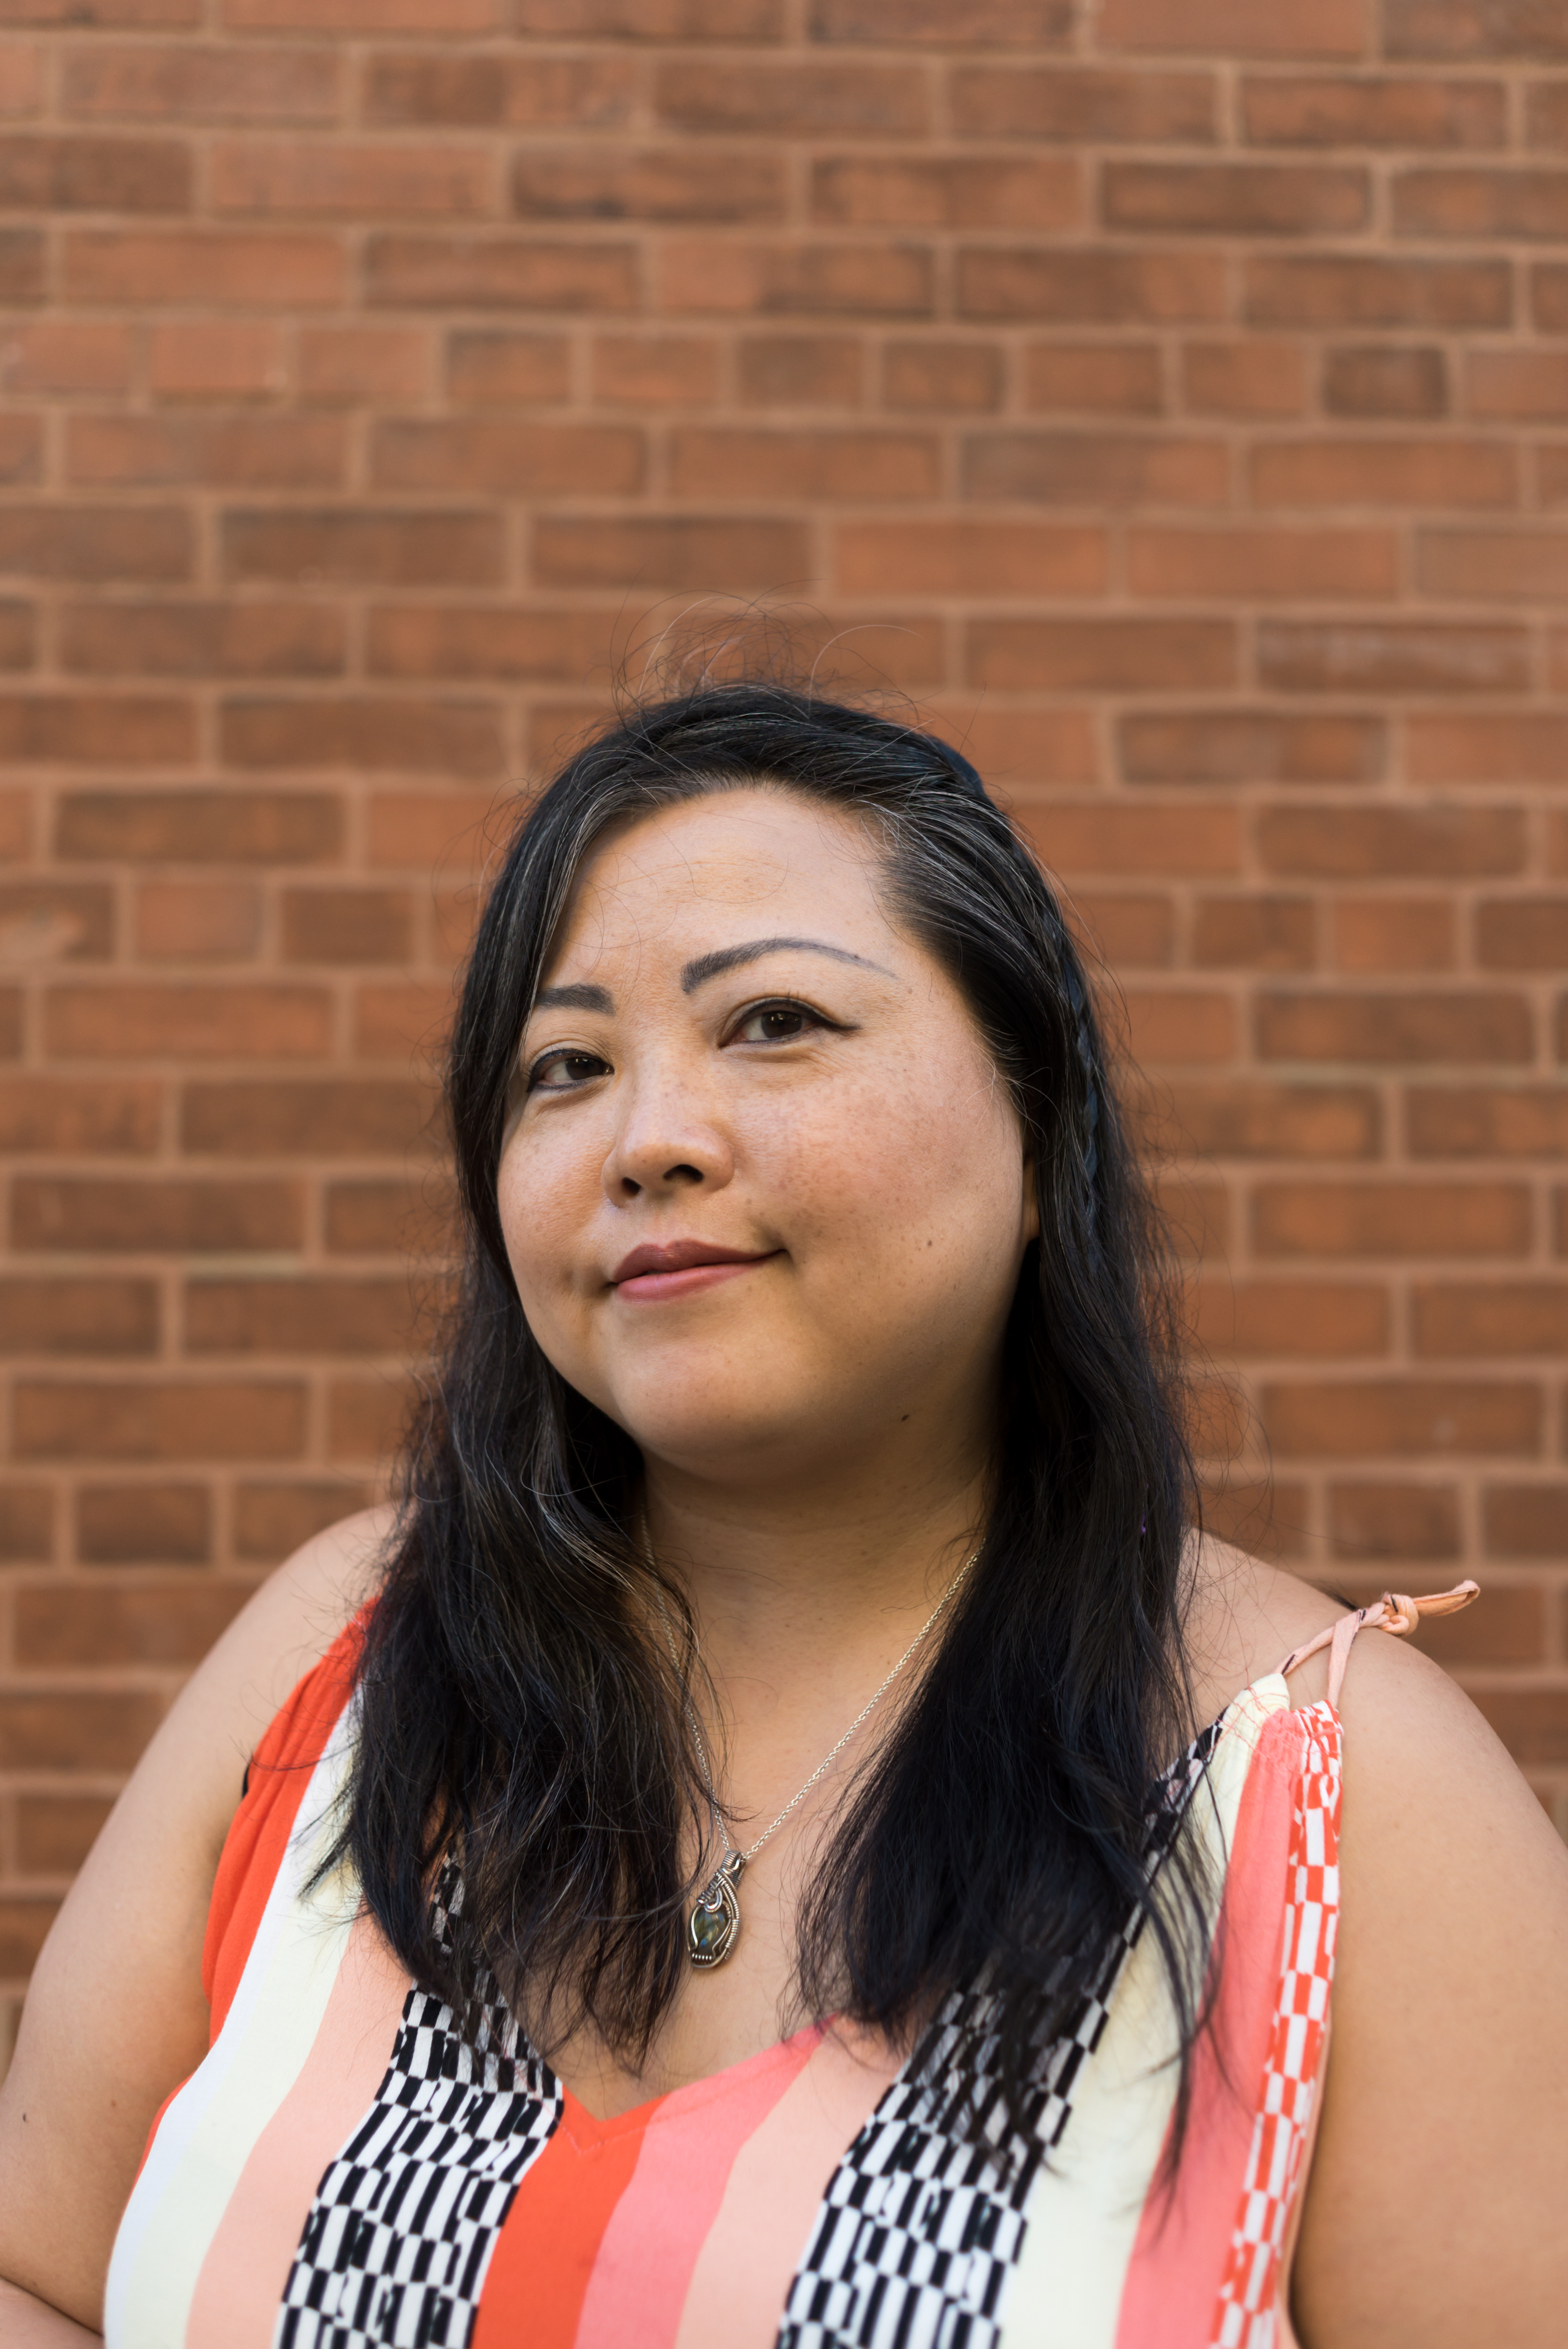 Image: A portrait of the artist Sarah-Ji standing in front of a brick wall wearing a patterned dress. She looks directly at the camera with a slight smile. Portrait taken by Ireashia Bennett.